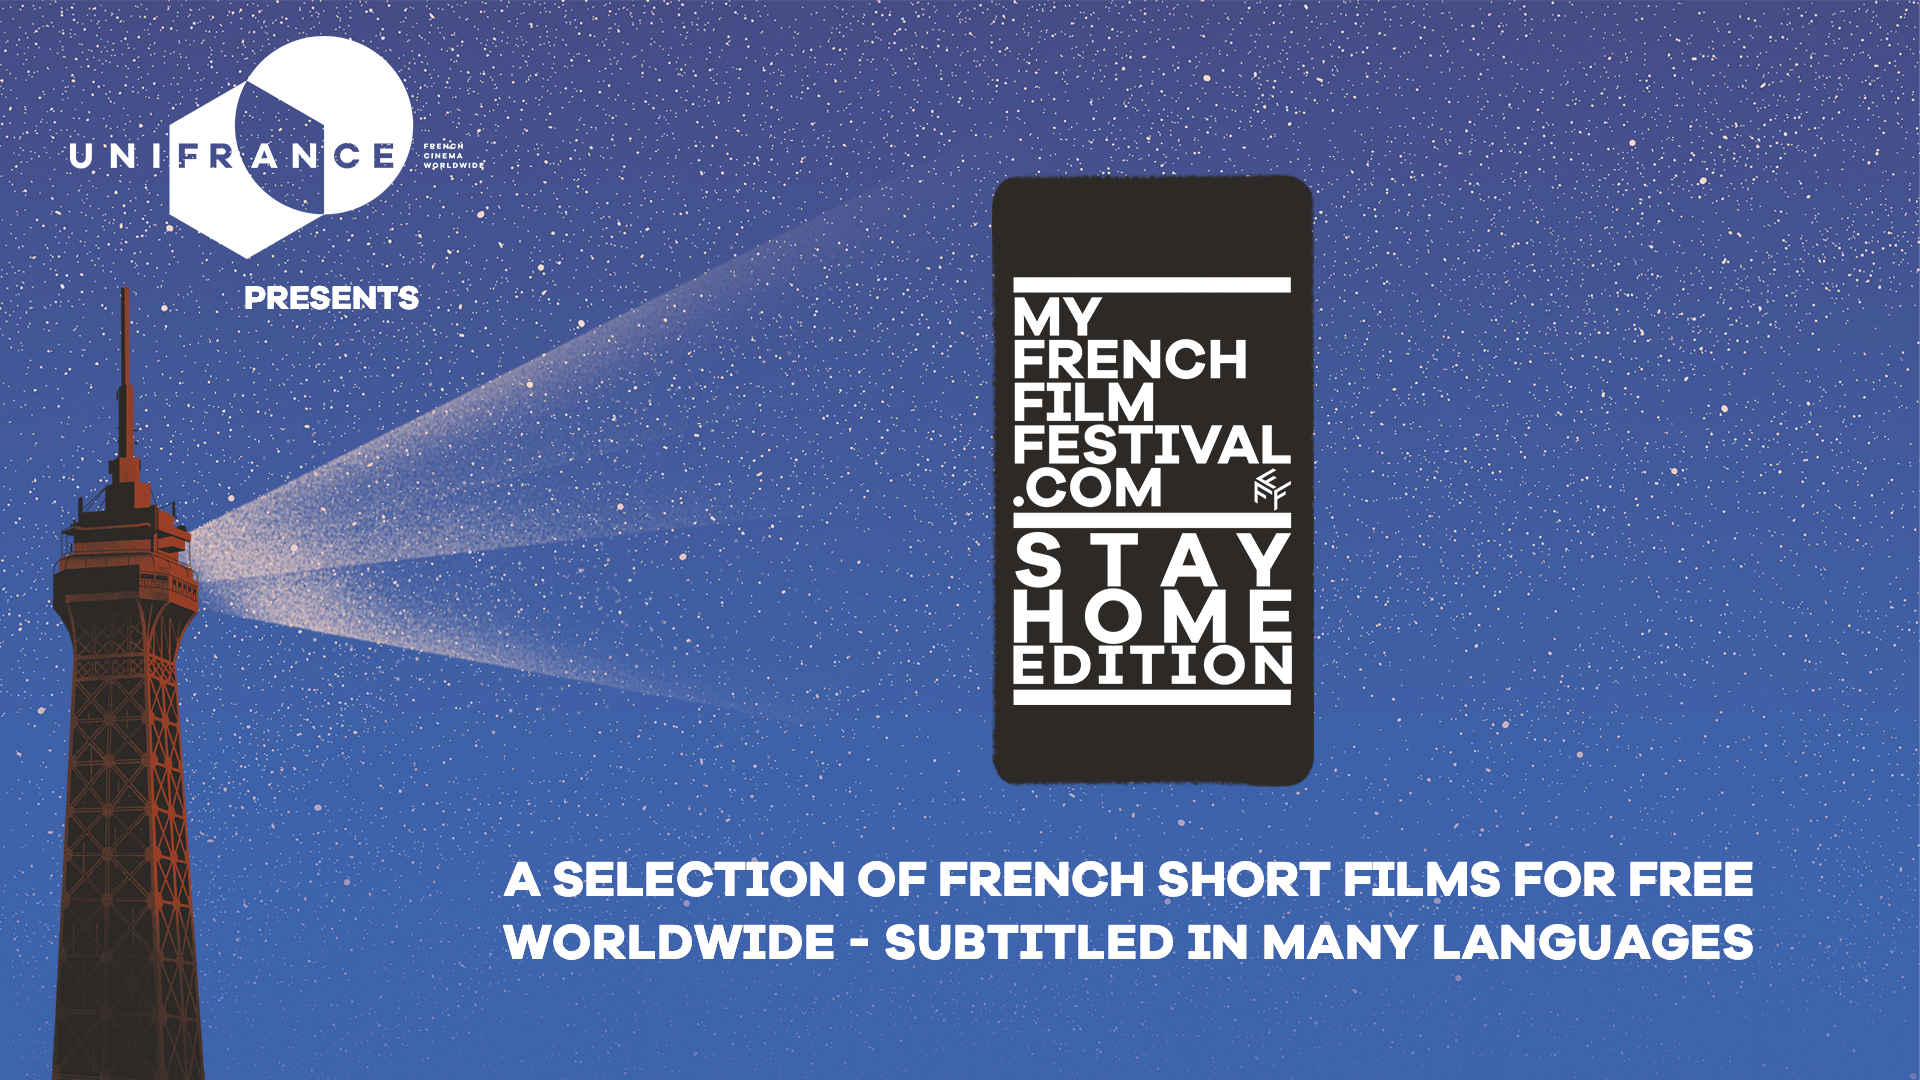 MY FRENCH FILM FESTIVAL - STAY HOME